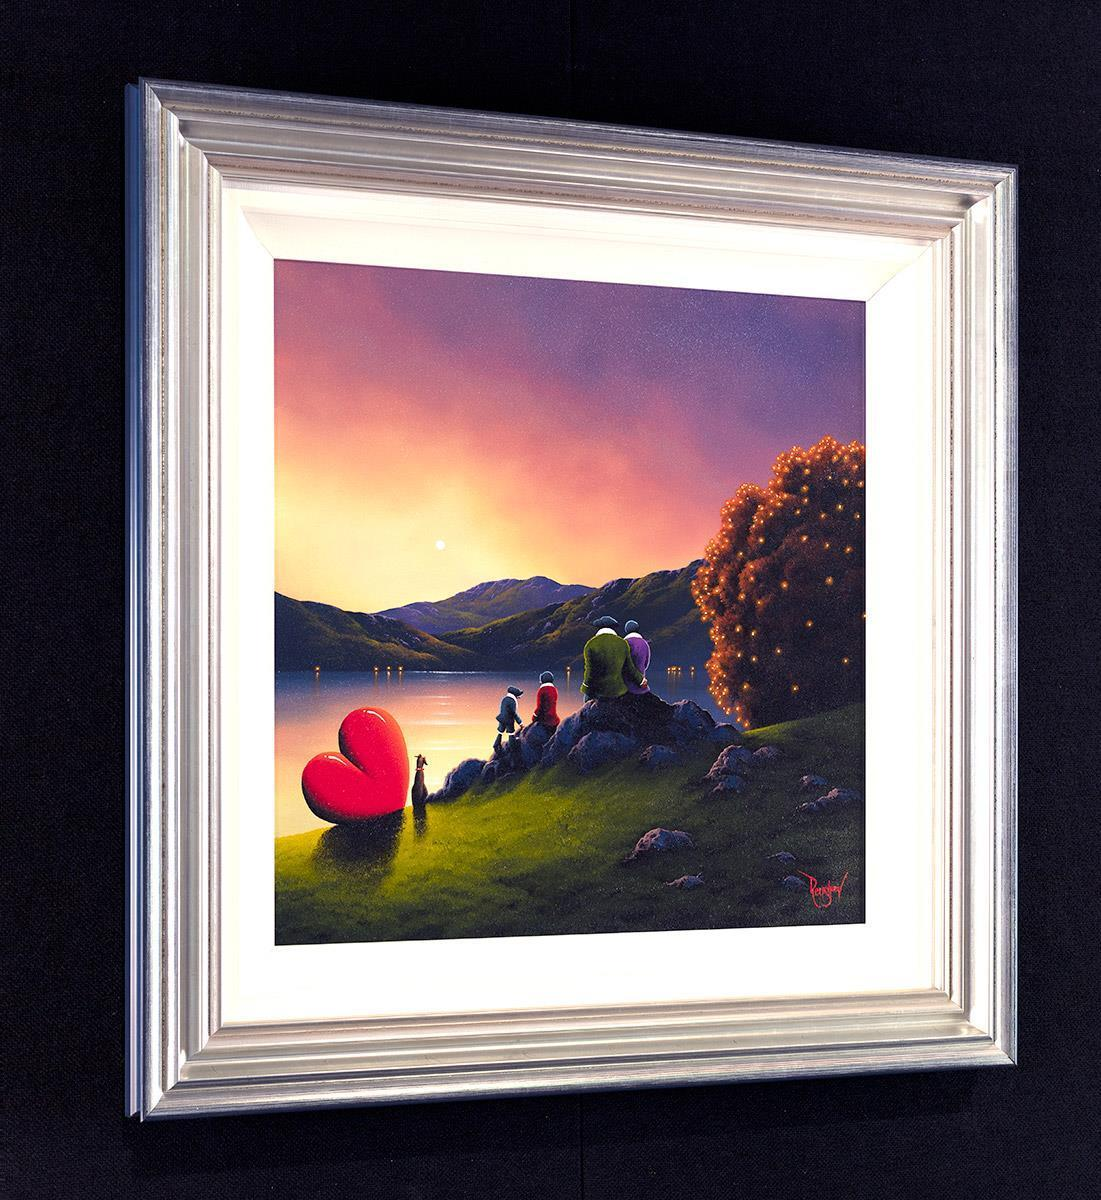 A Moment Like This David Renshaw Framed